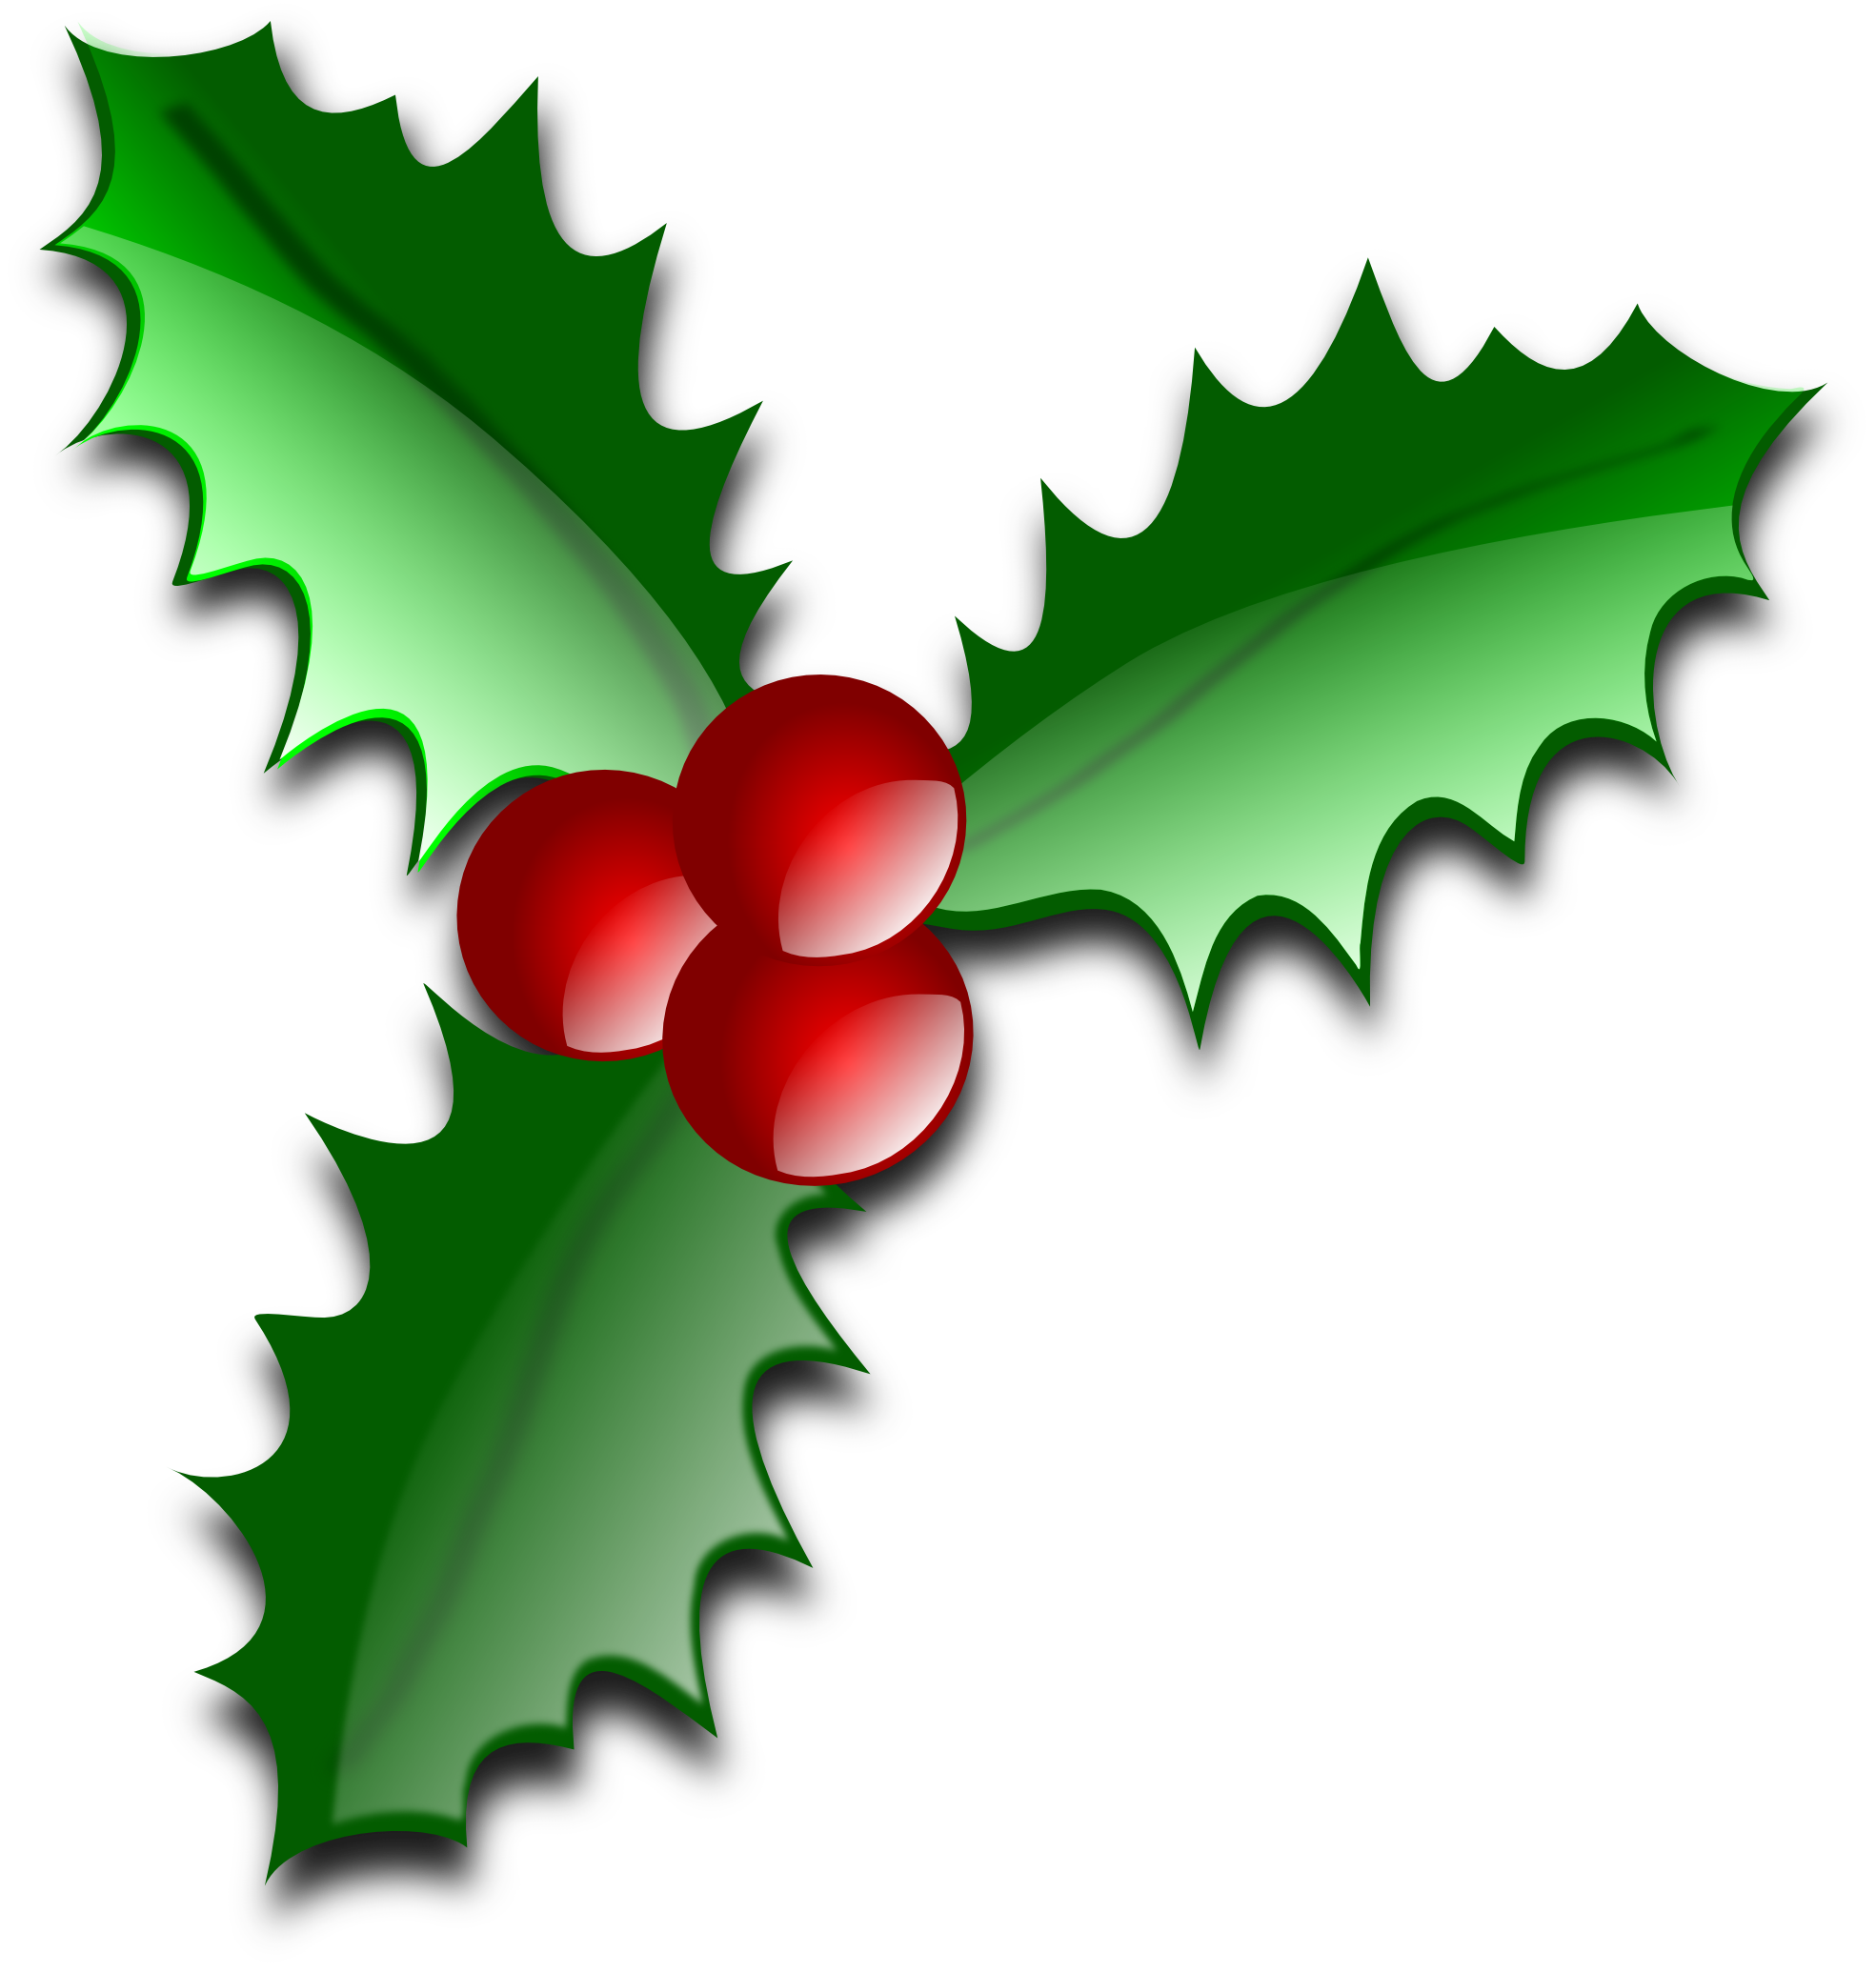 Holiday Clip Art For Microsoft Outlook F-Holiday clip art for microsoft outlook free-7